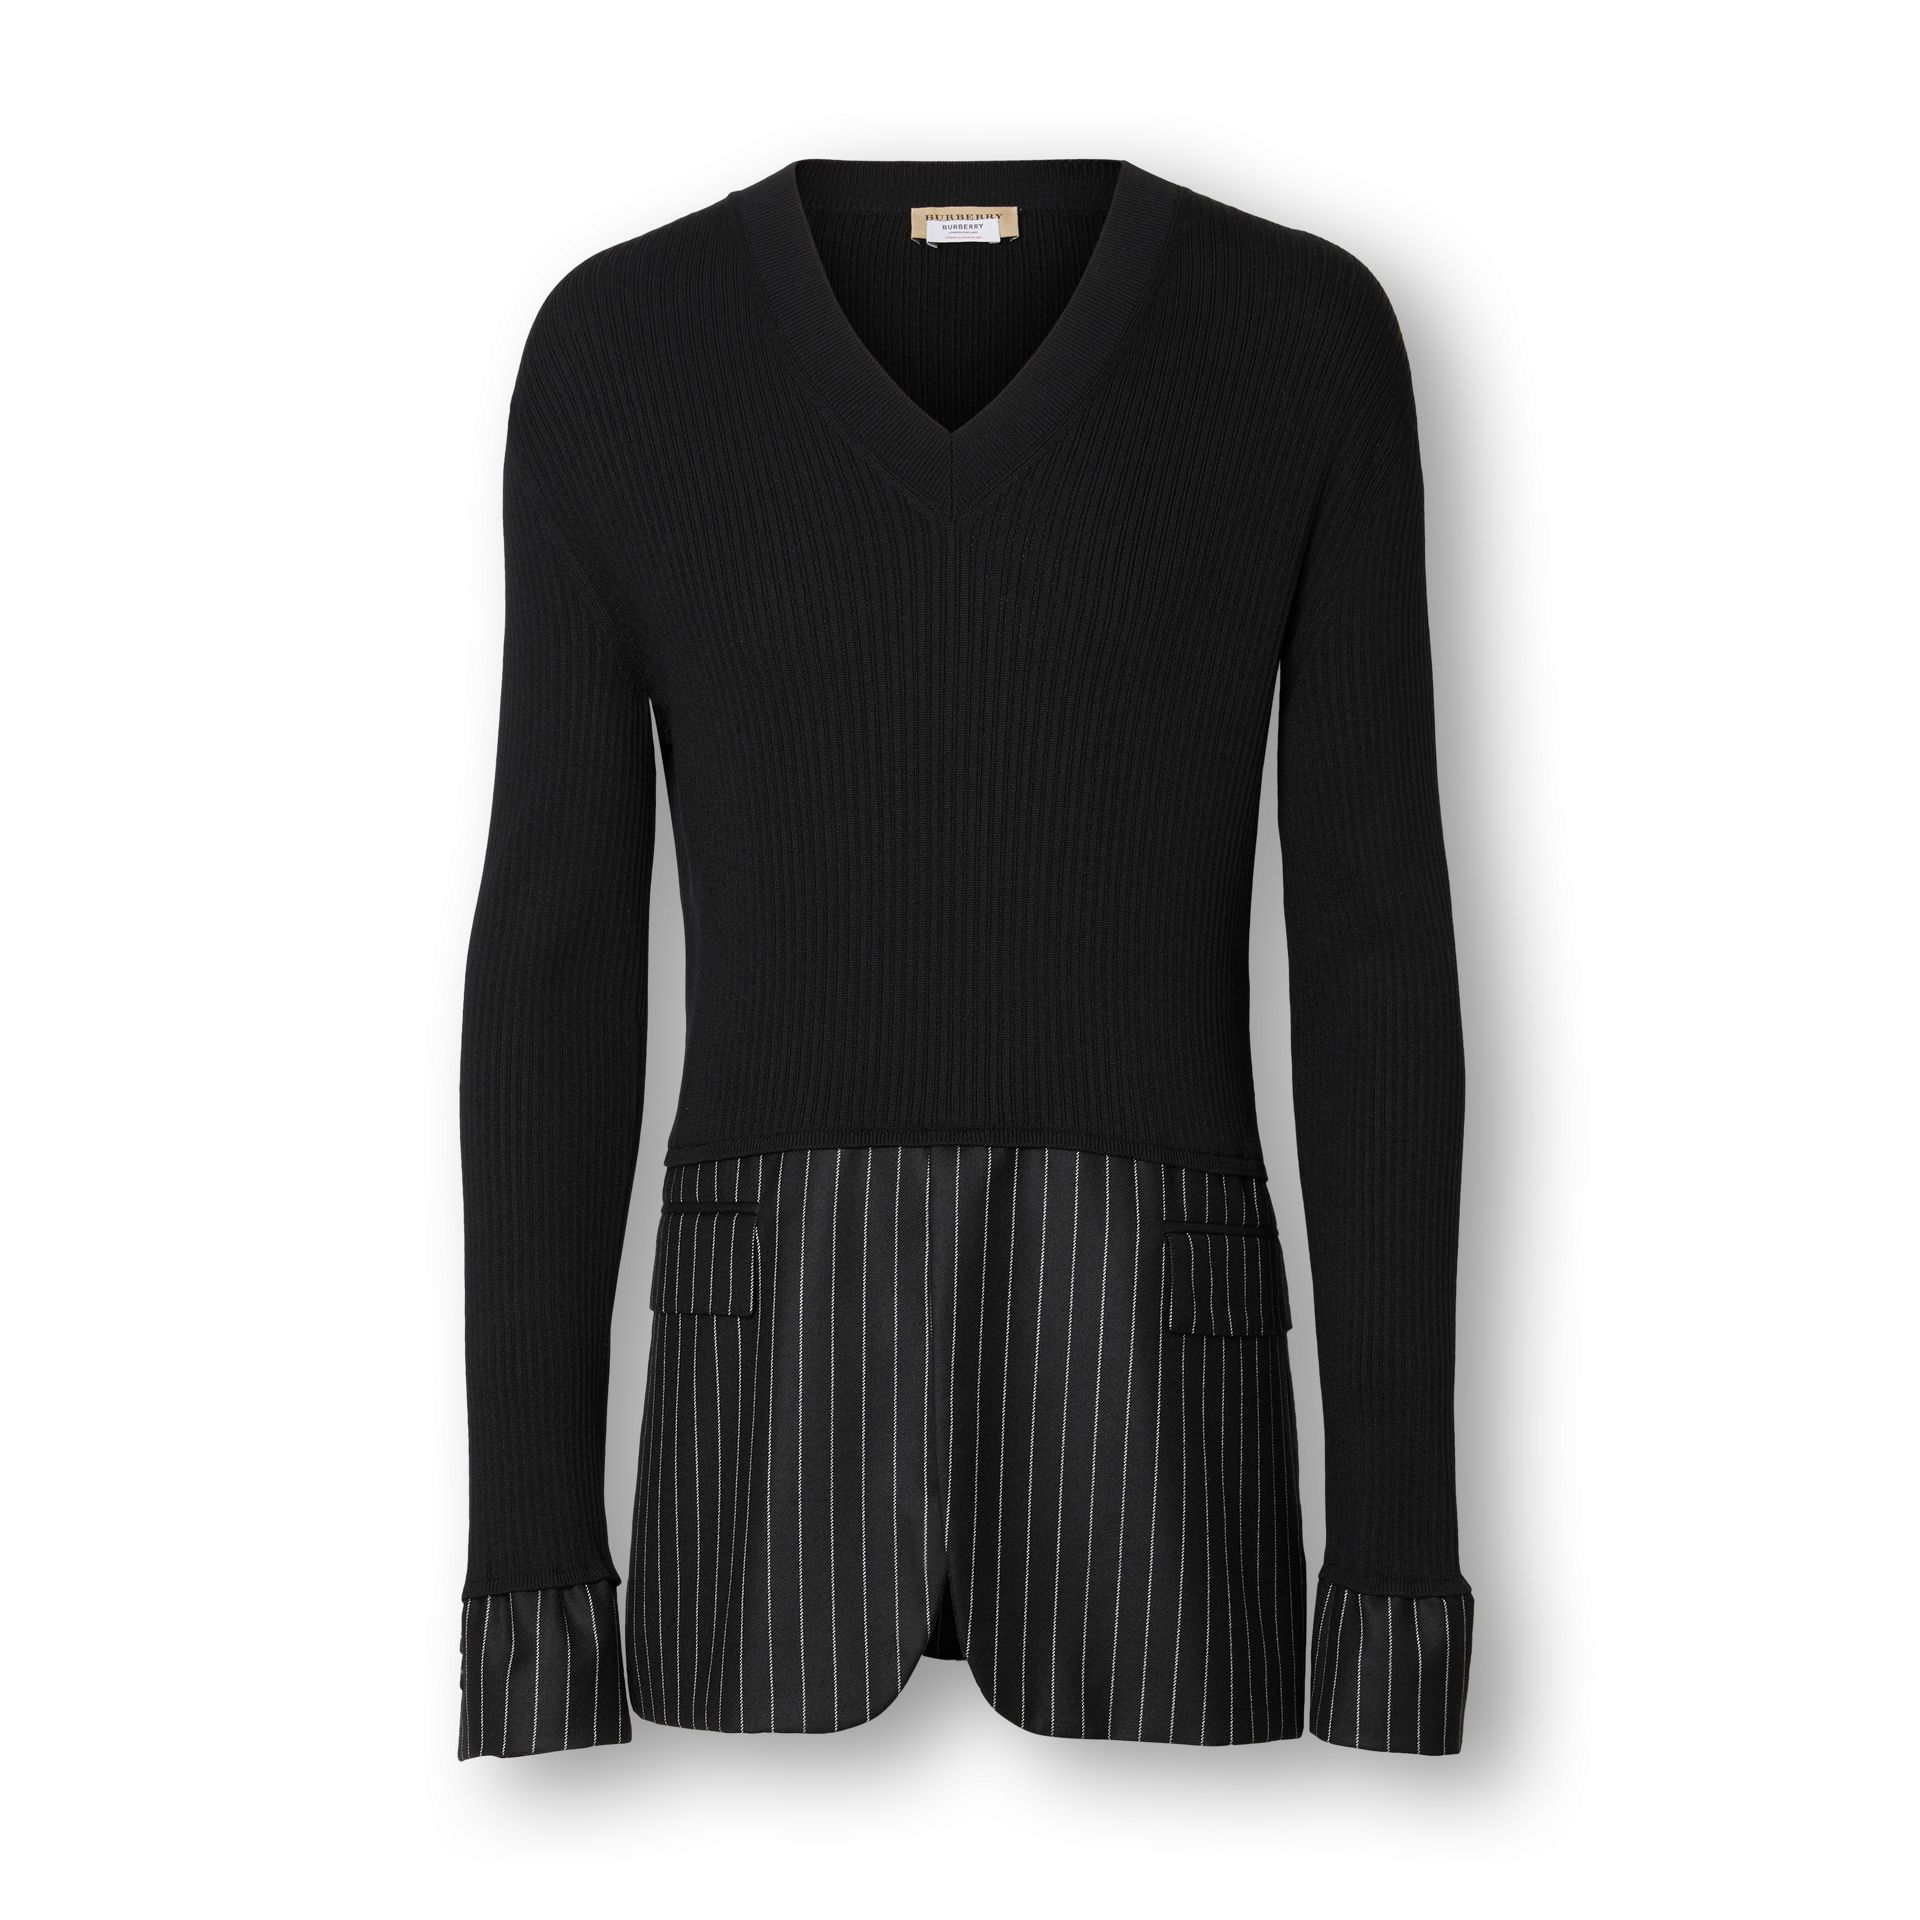 Tailored Panel Rib Knit Silk Blend Sweater in Black | Burberry Australia - gallery image 3